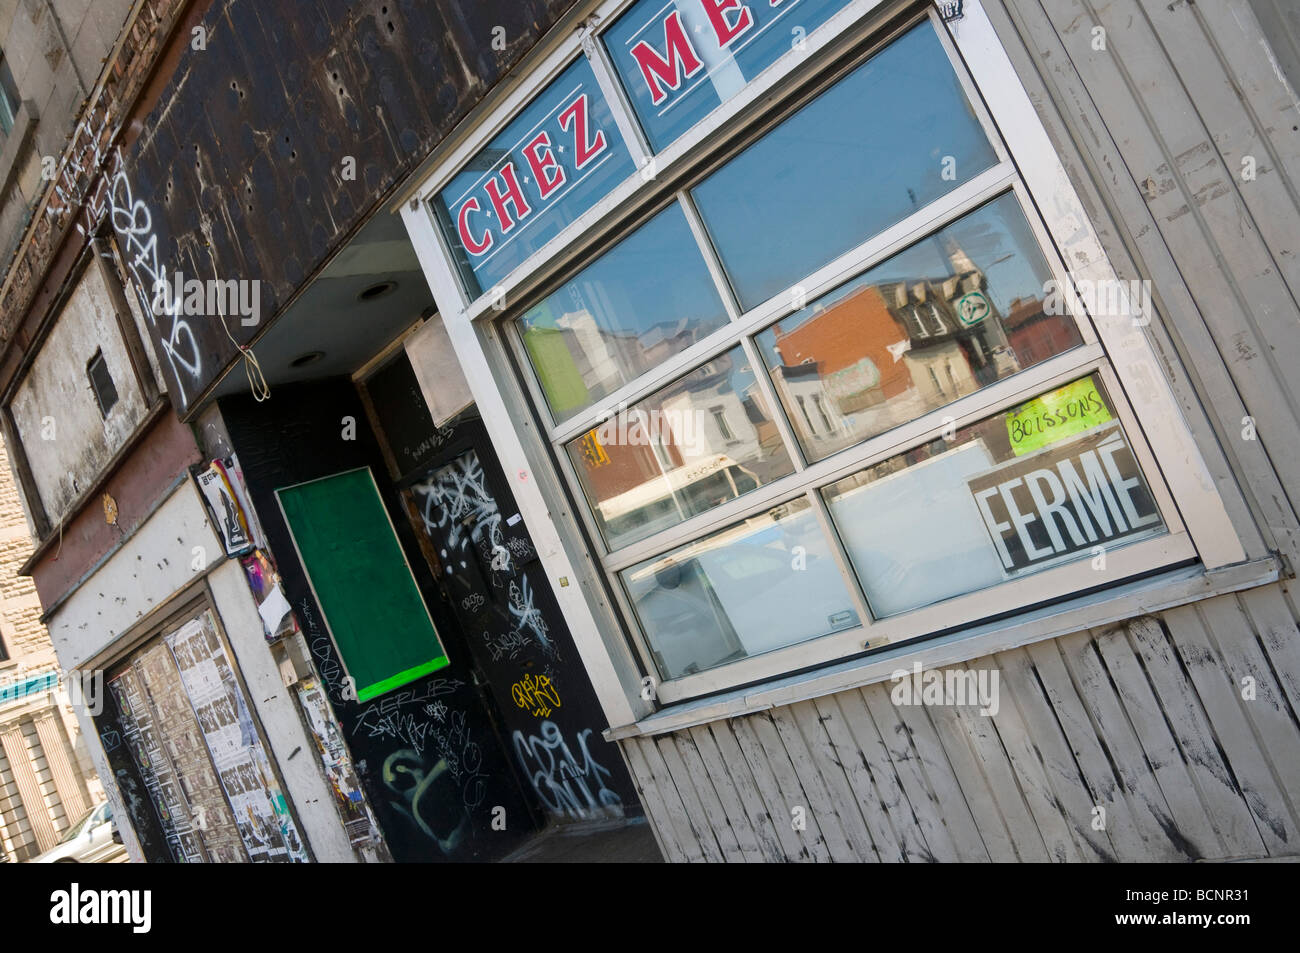 Closed business on boulevard Saint Laurent Montreal Quebec Canada - Stock Image